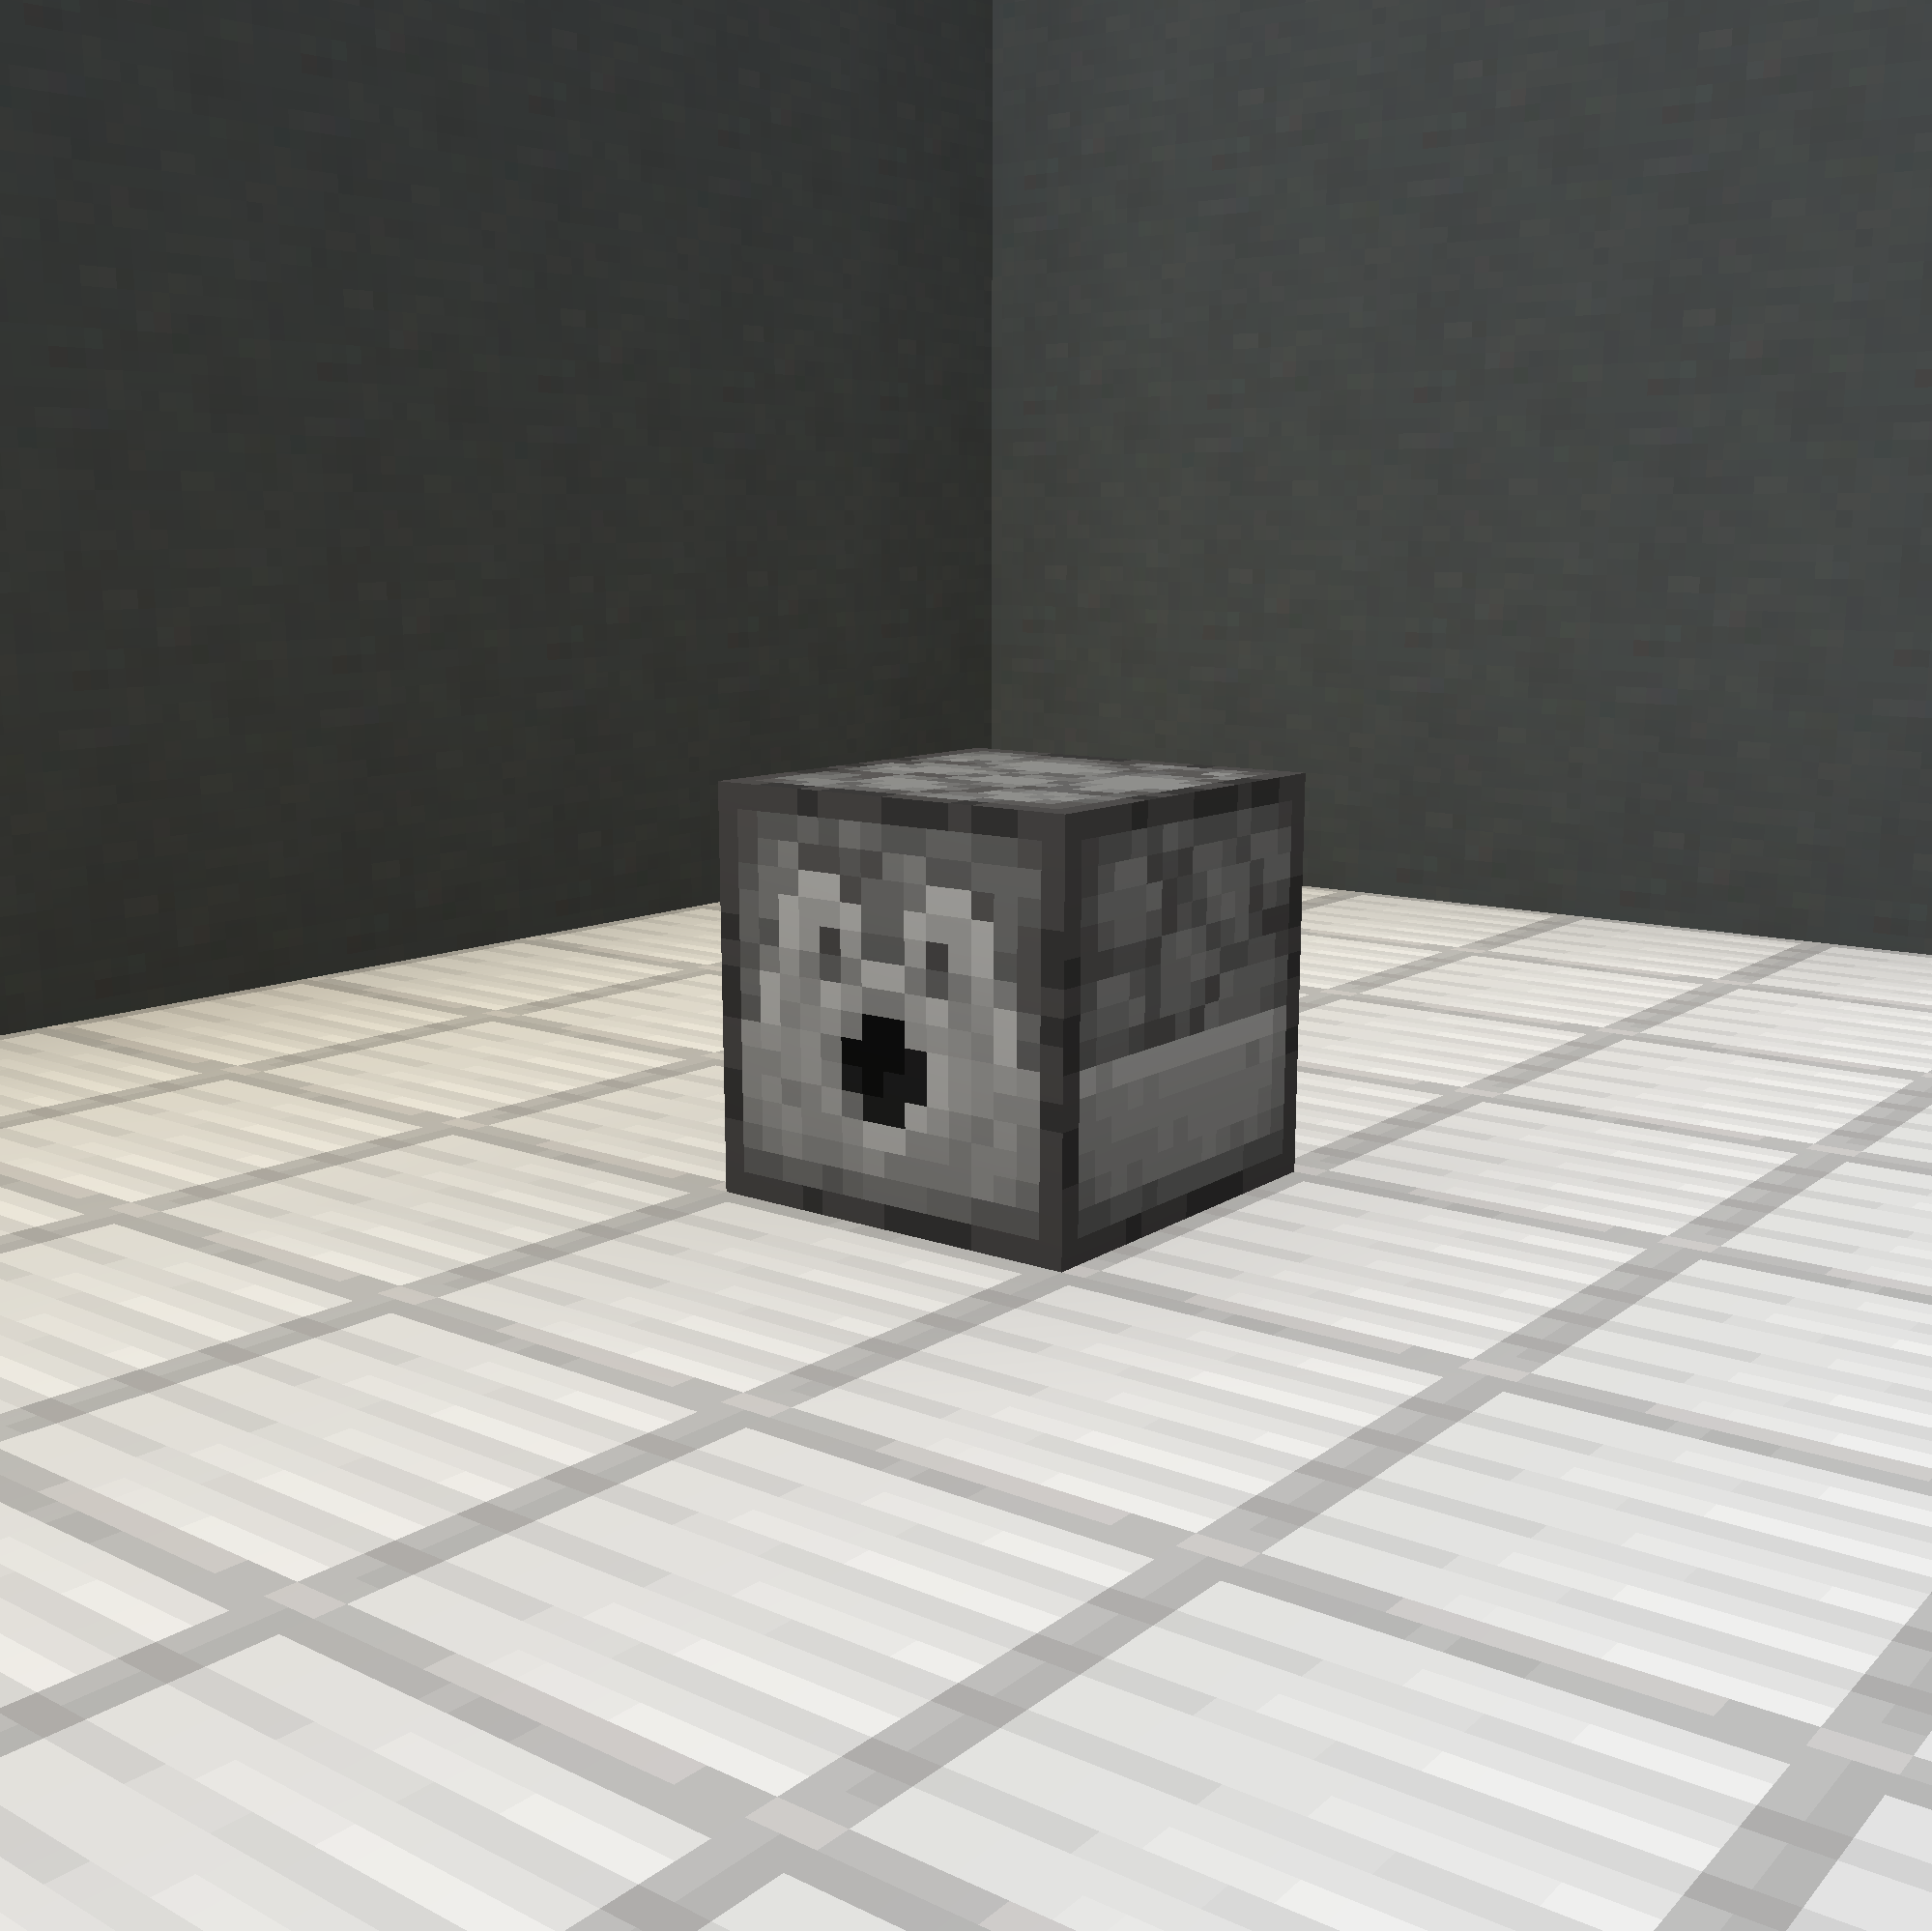 Block Placer Placed